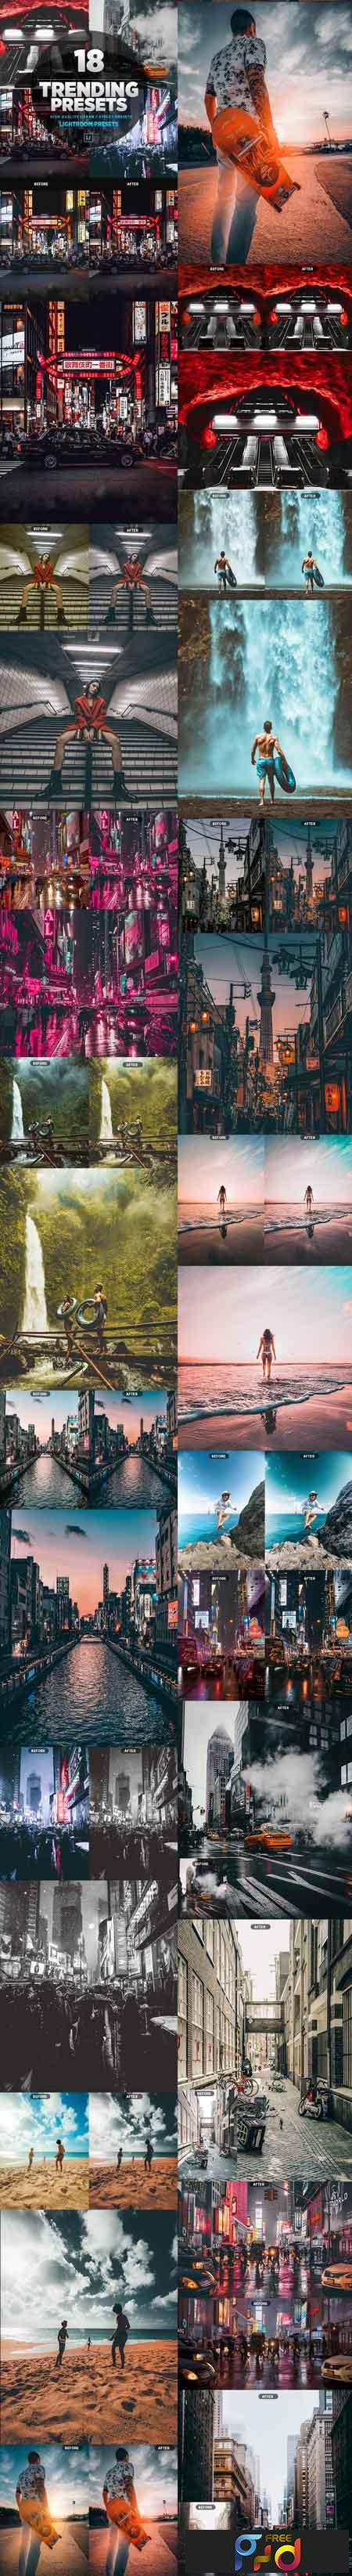 Trending Lightroom Presets 22643188 1